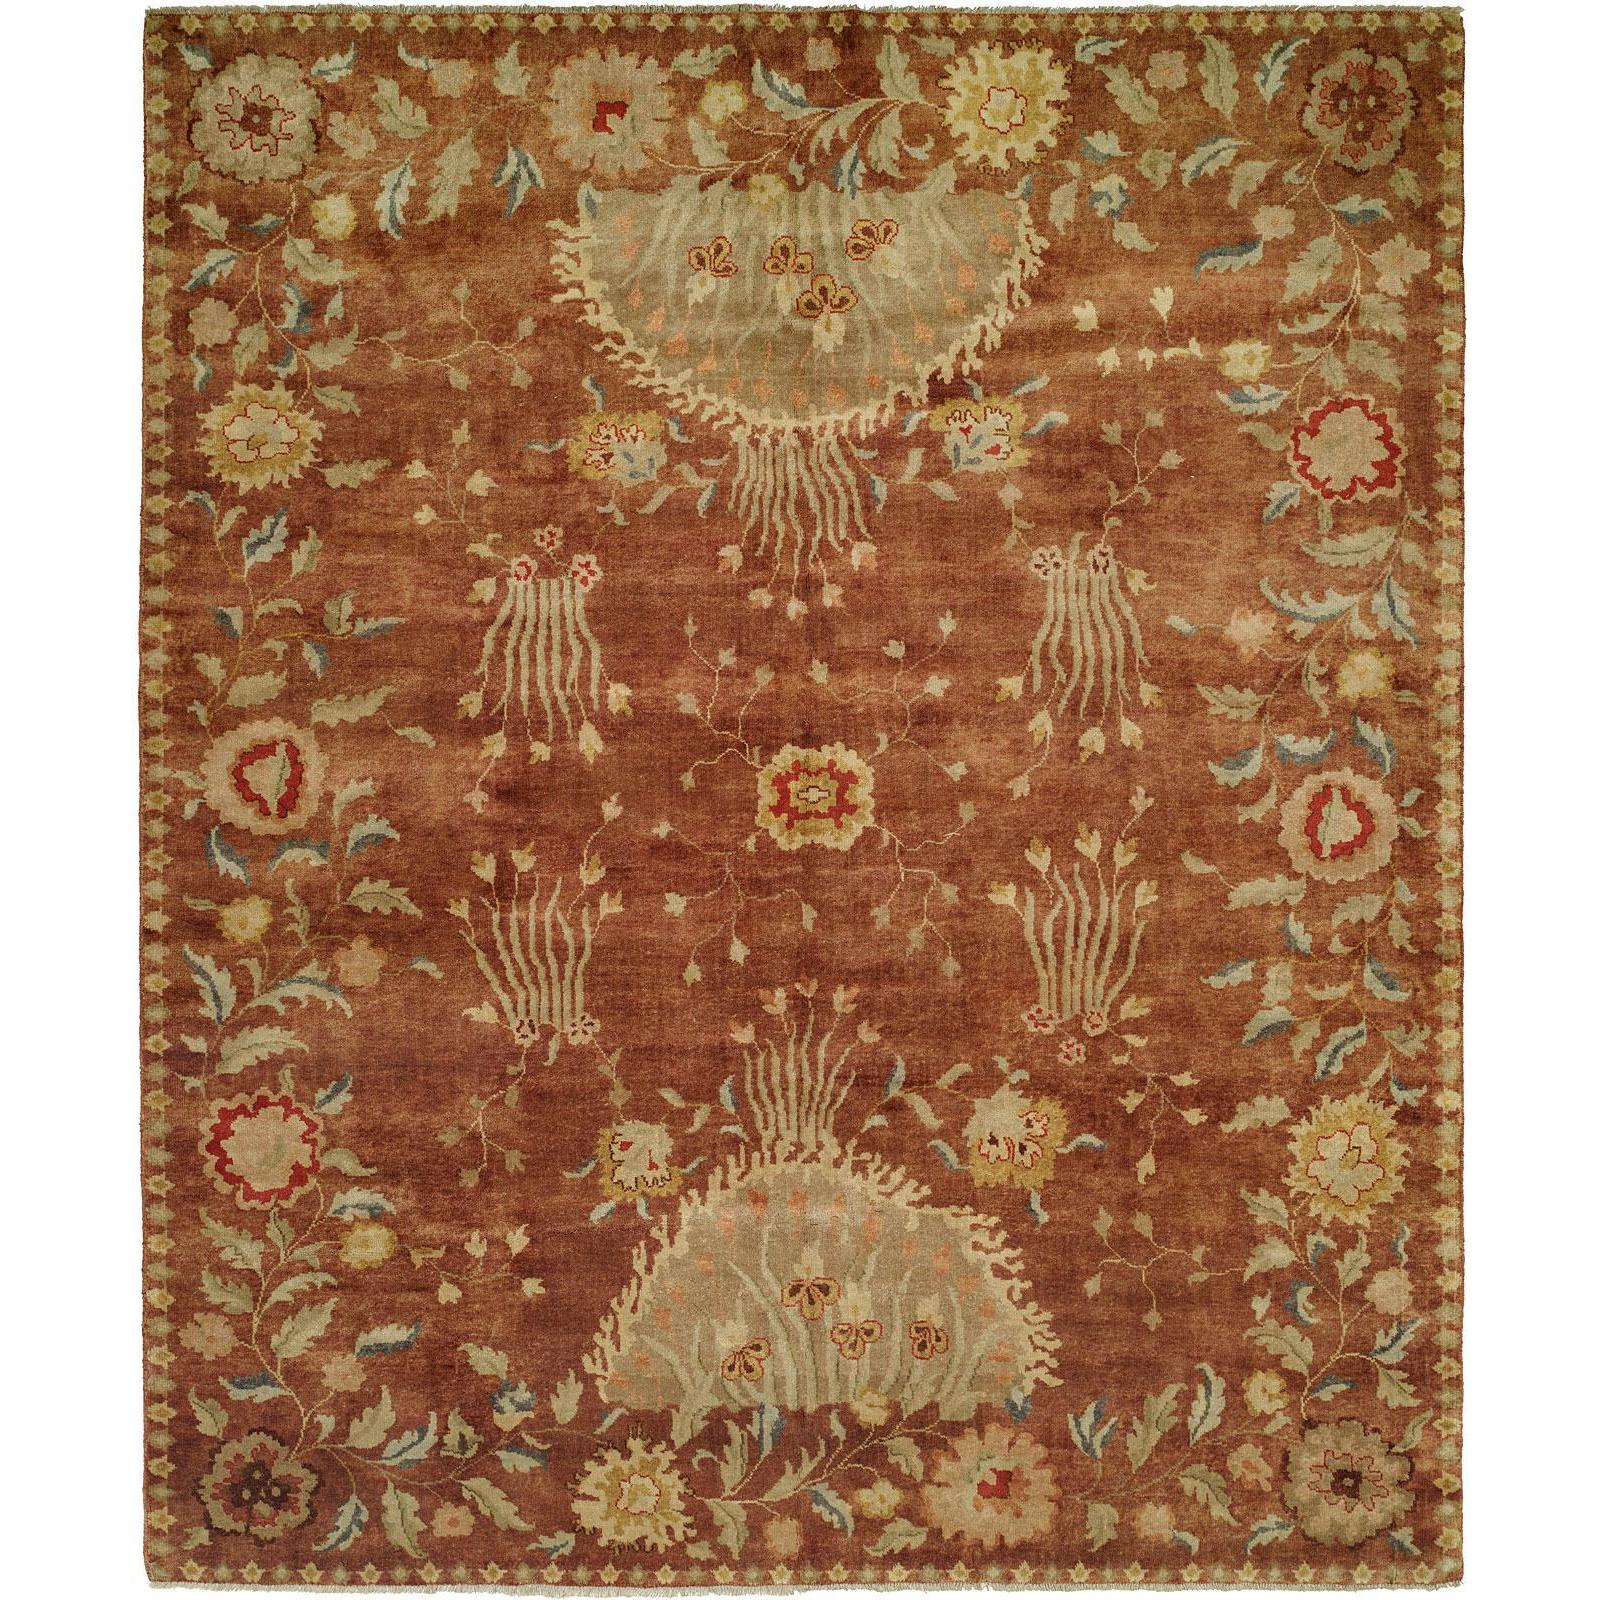 Carol Bolton Rodewood Reverie Red Hand Knotted Wool Area Rug Overstock 18798102 Red 2 6 X 10